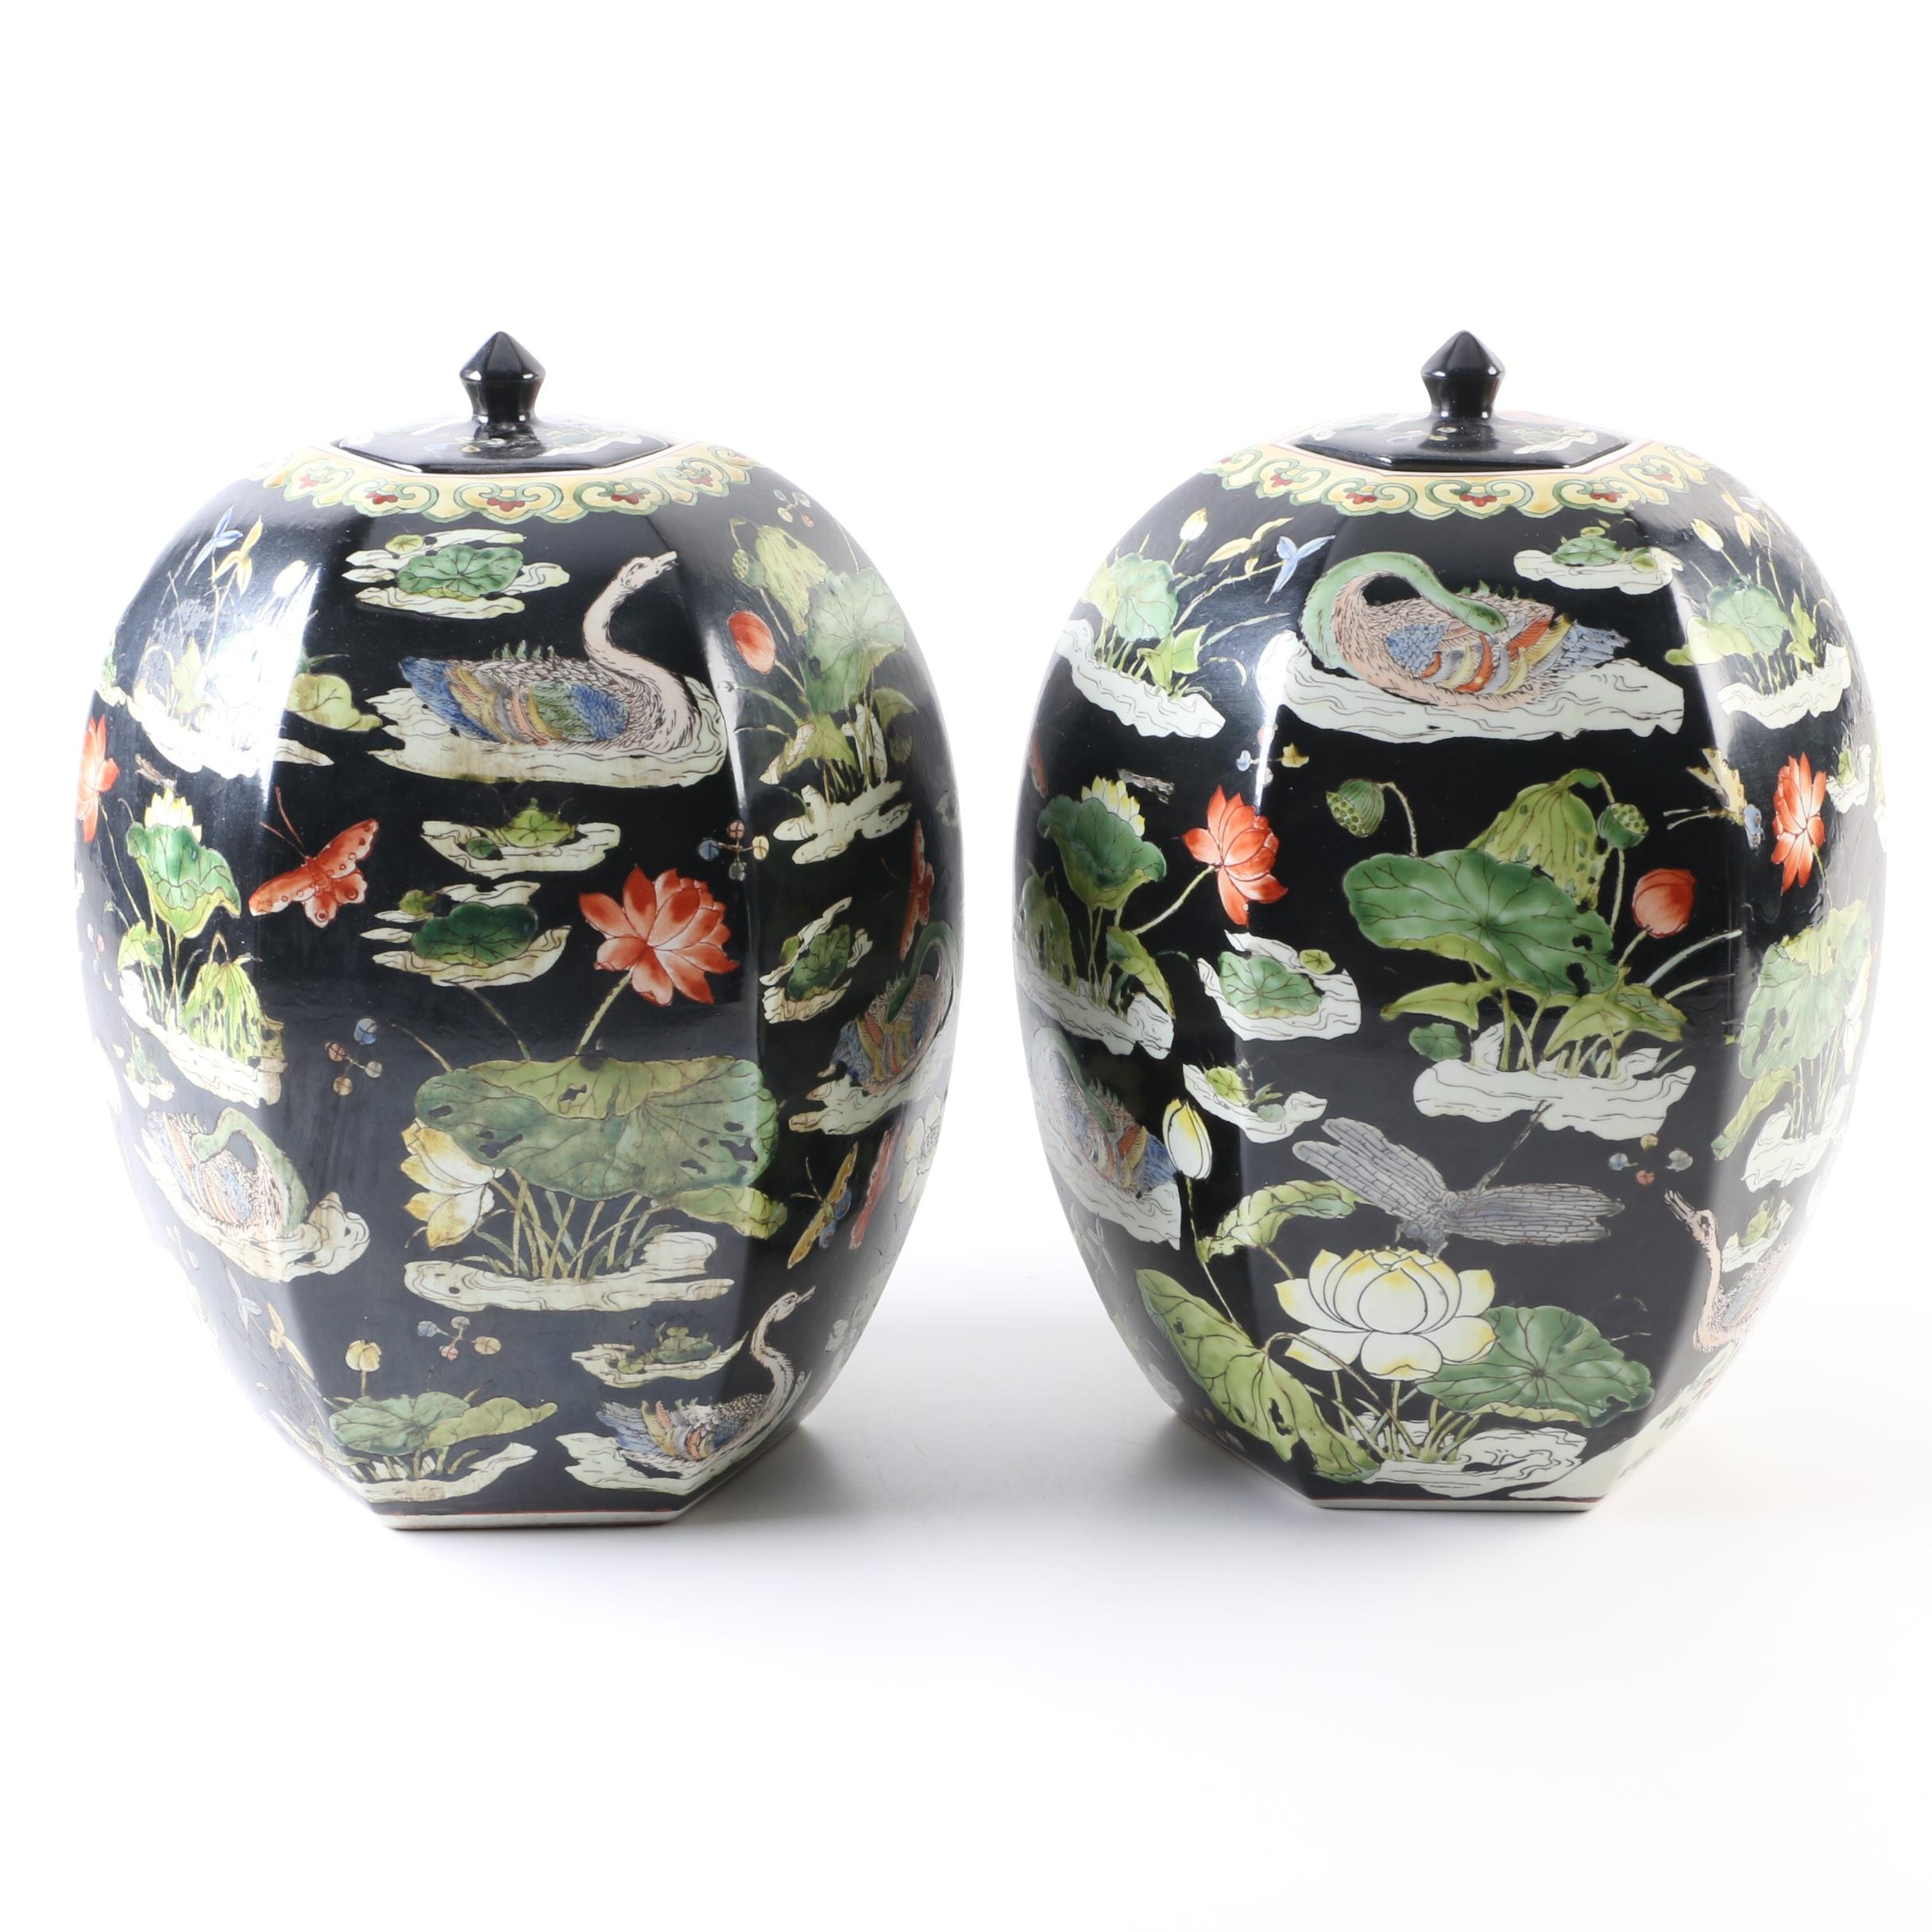 Chinese Famille Noire Style Hand-Painted Ginger Jars